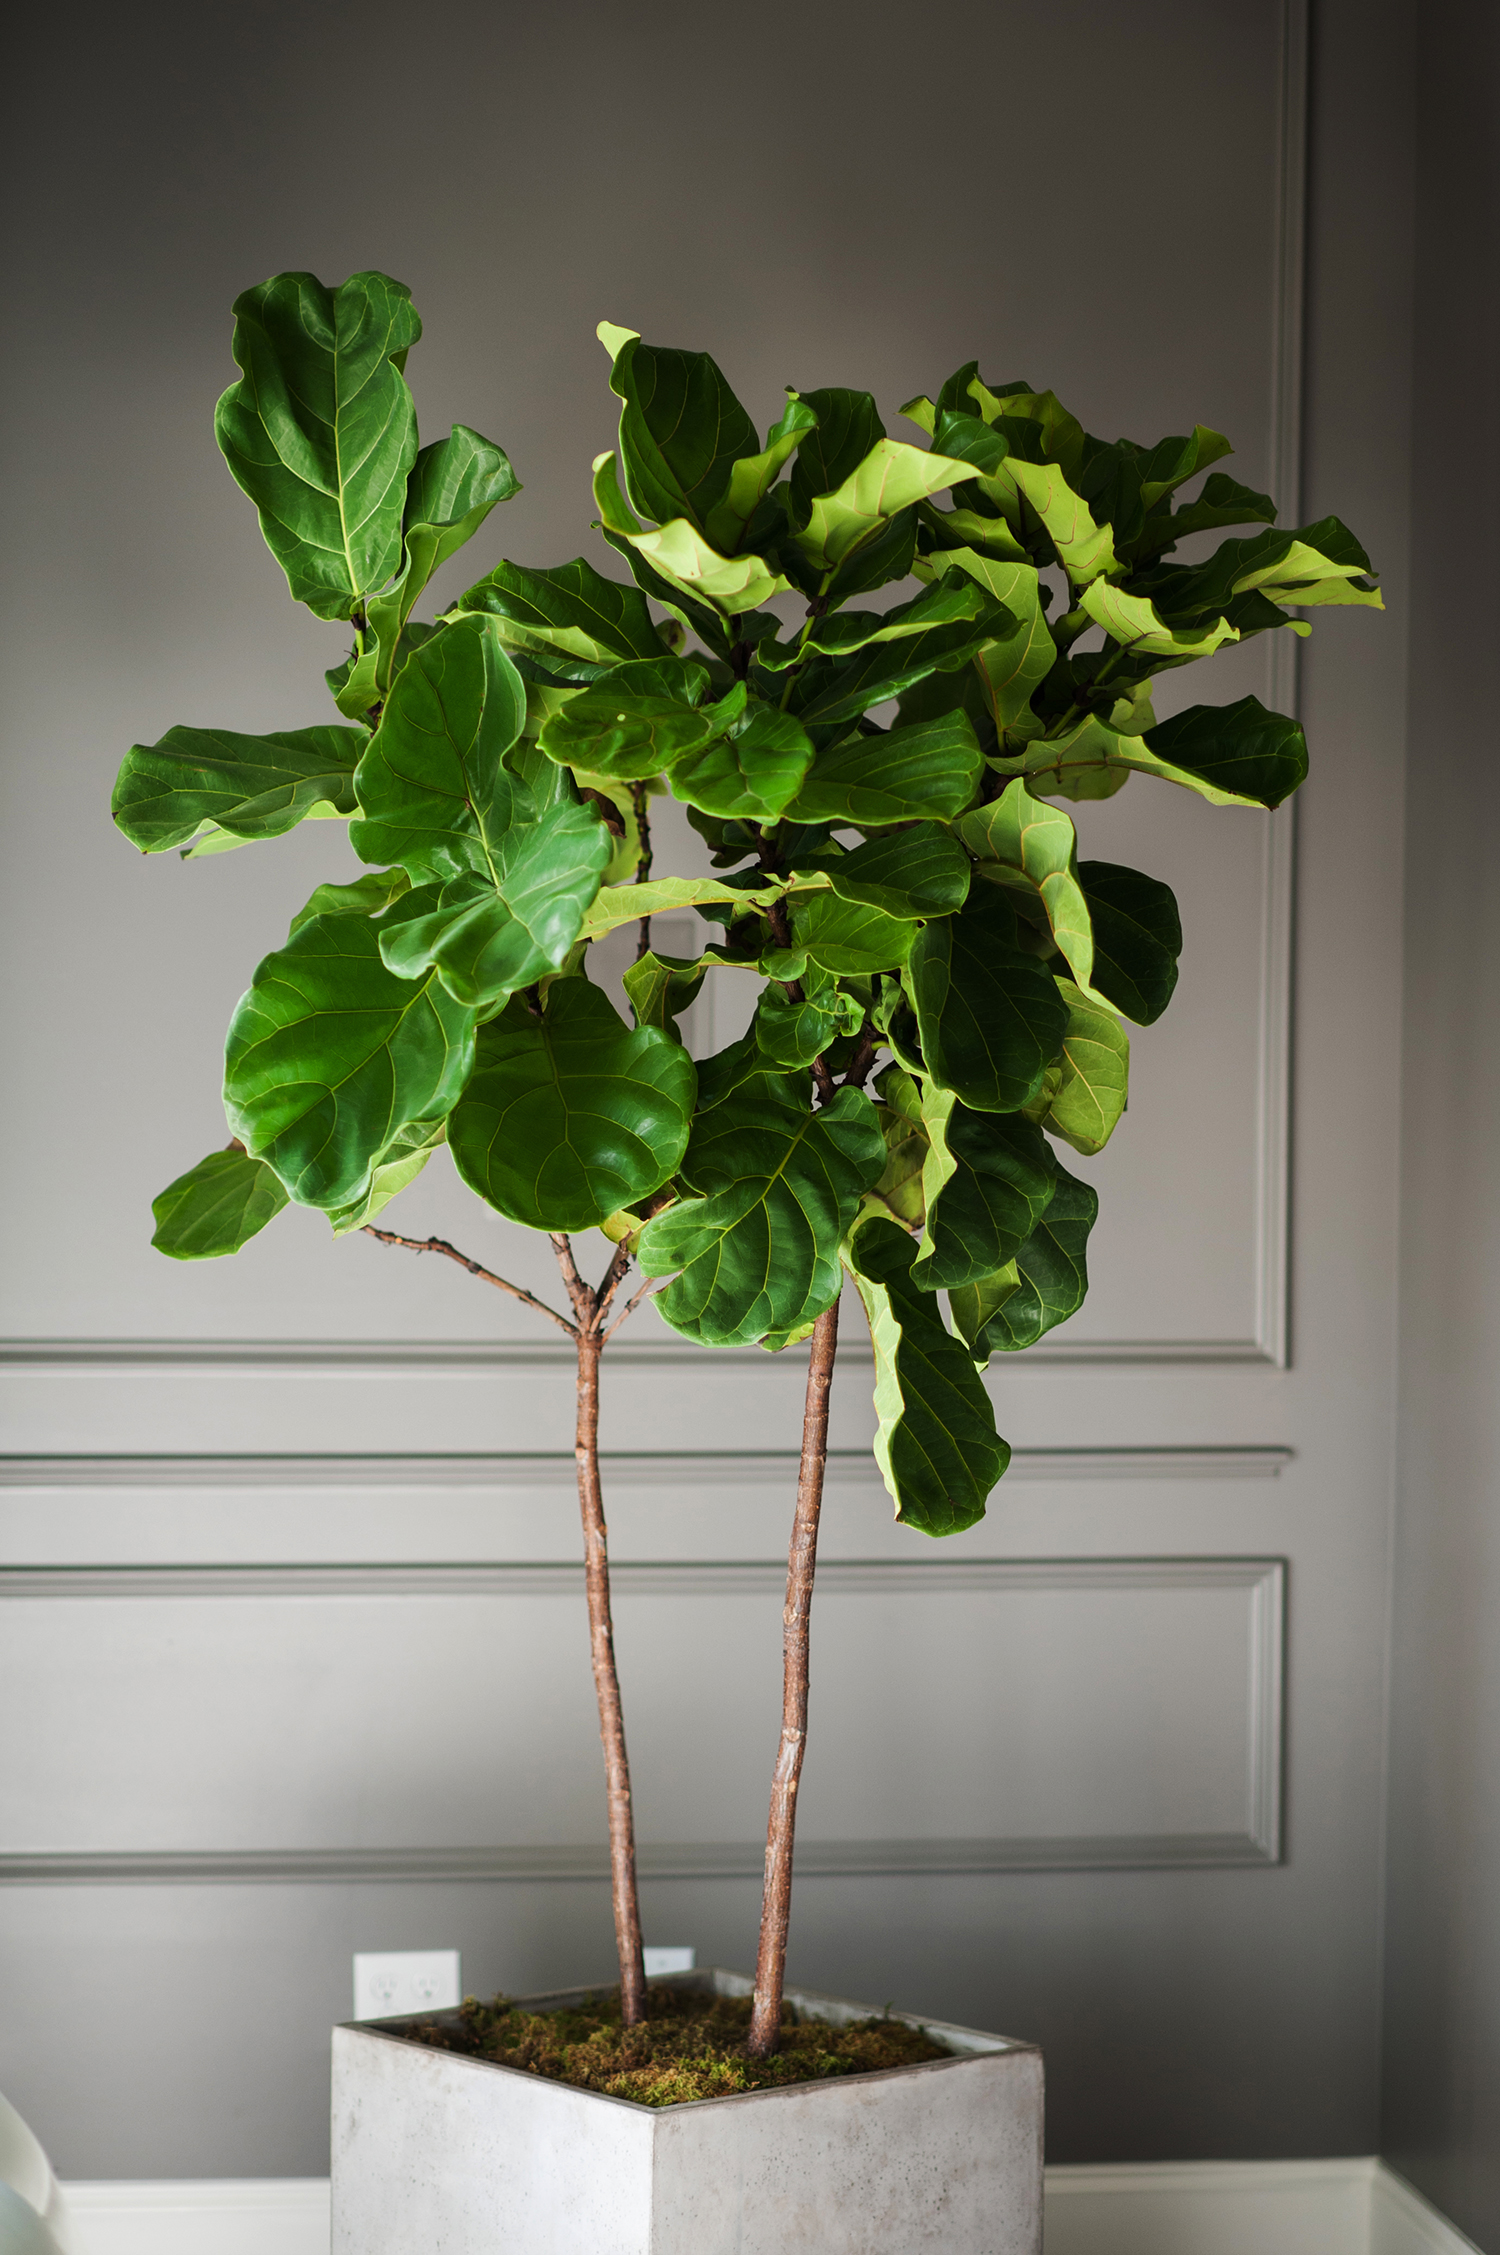 Tall Indoor Plants With Big Leaves Top 5 Indoor Plants And How To Care For Them